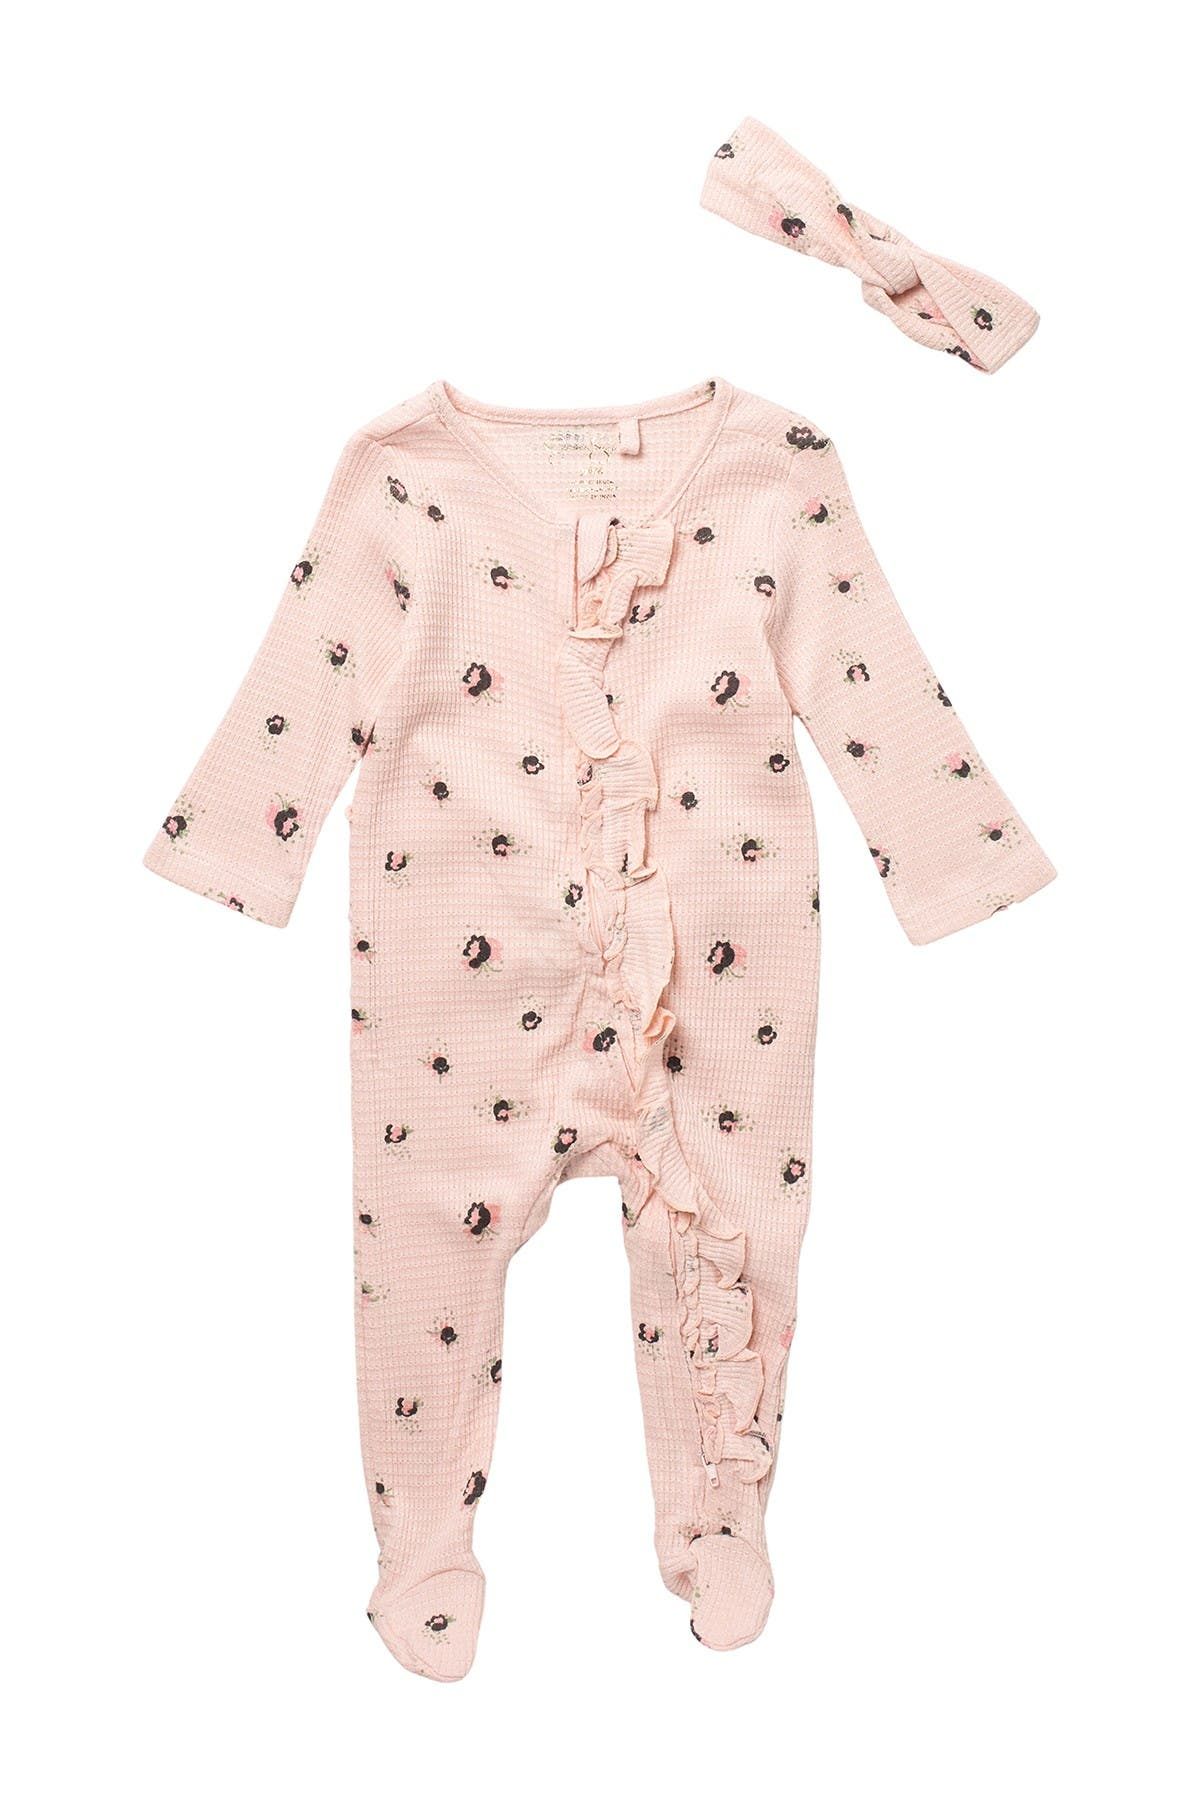 Jessica Simpson Baby Girl Footie With Headband